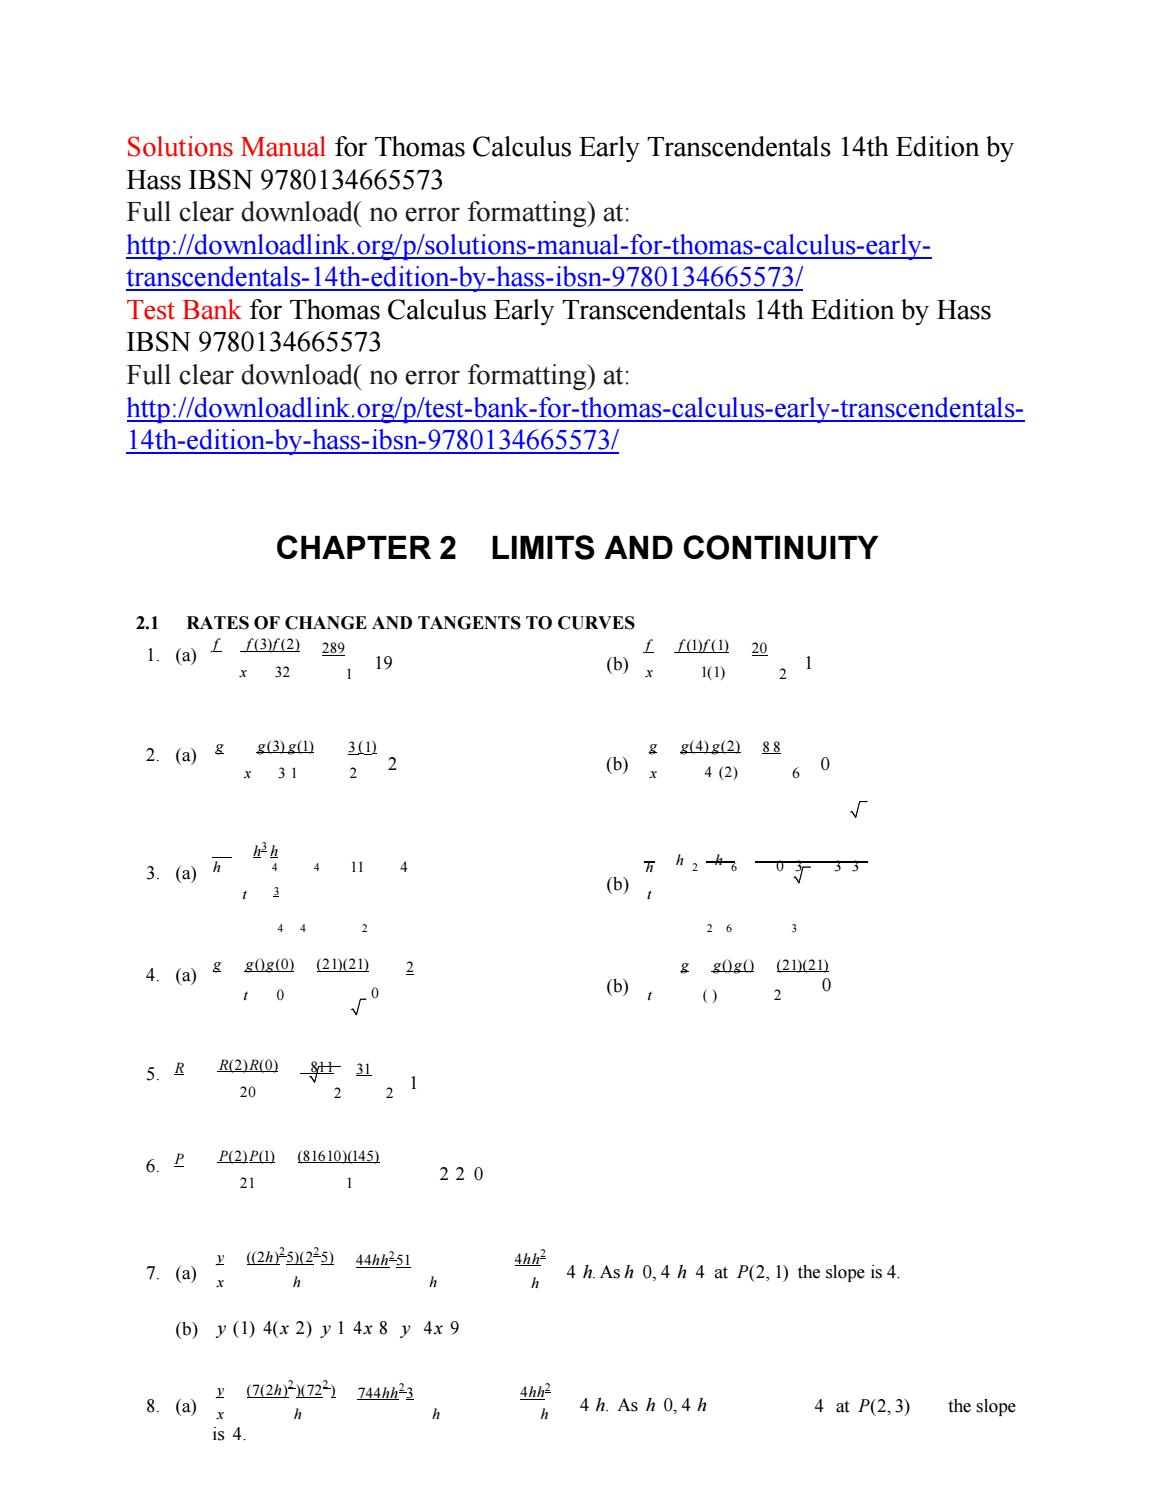 Thomas Calculus 14th Edition Pdf Solutions